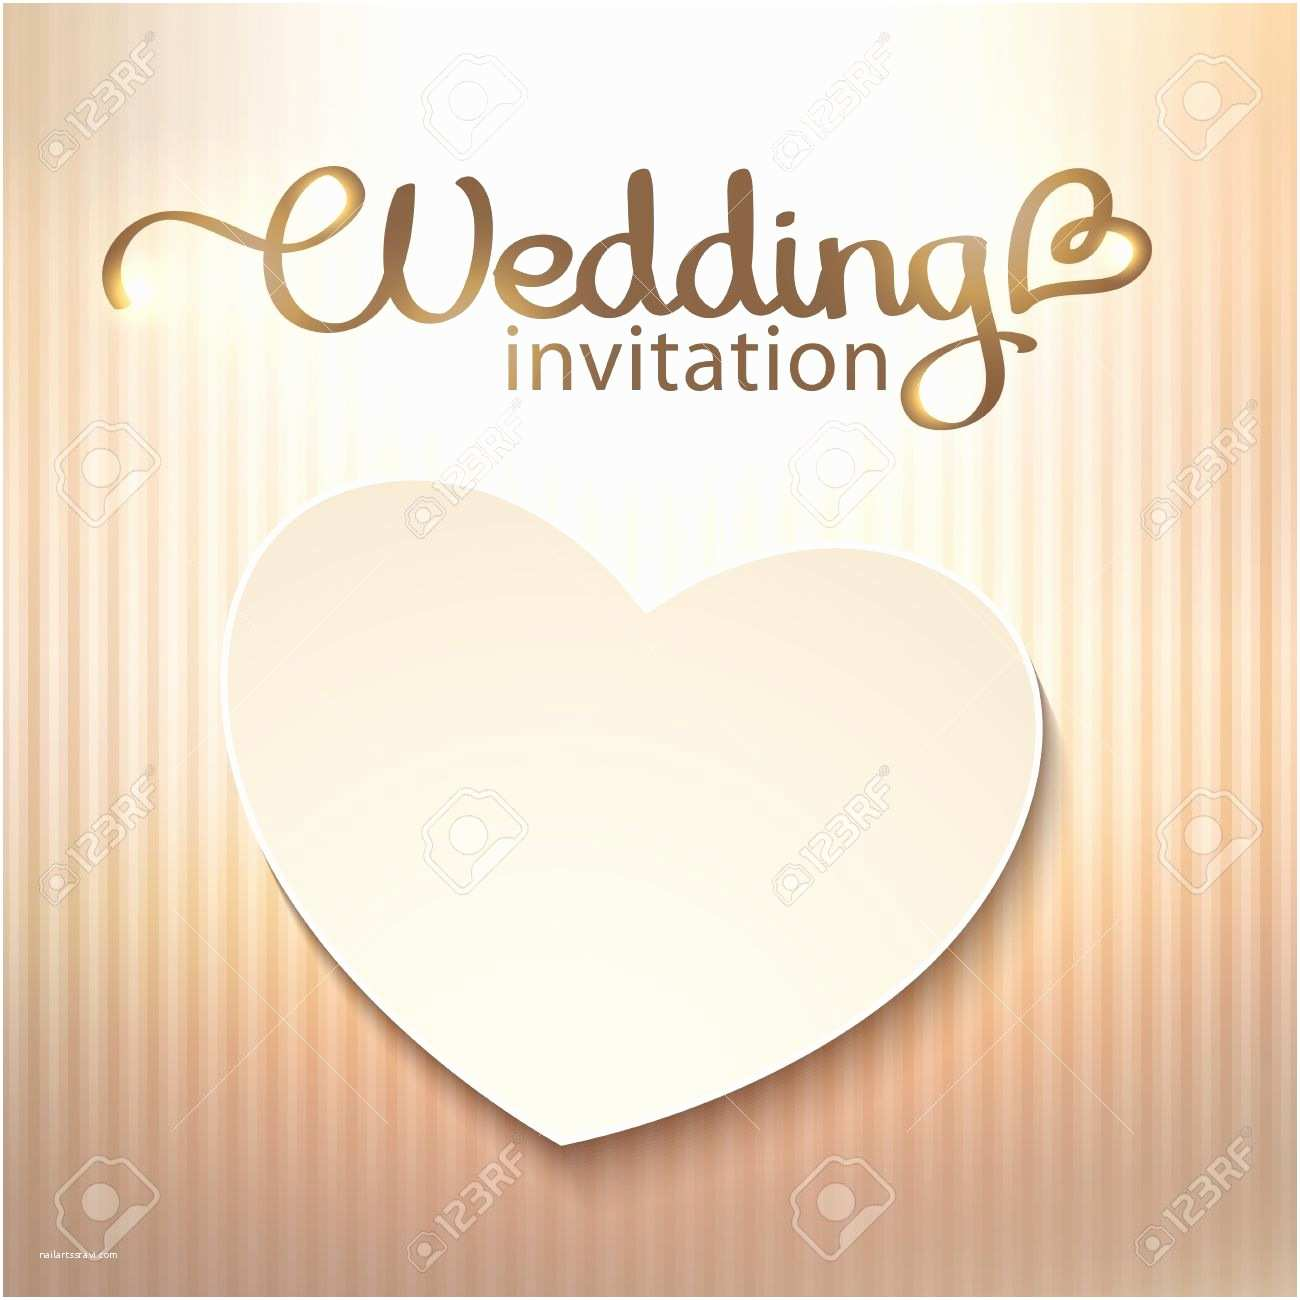 Wedding Invitation Pictures Background Wedding Invitation Background